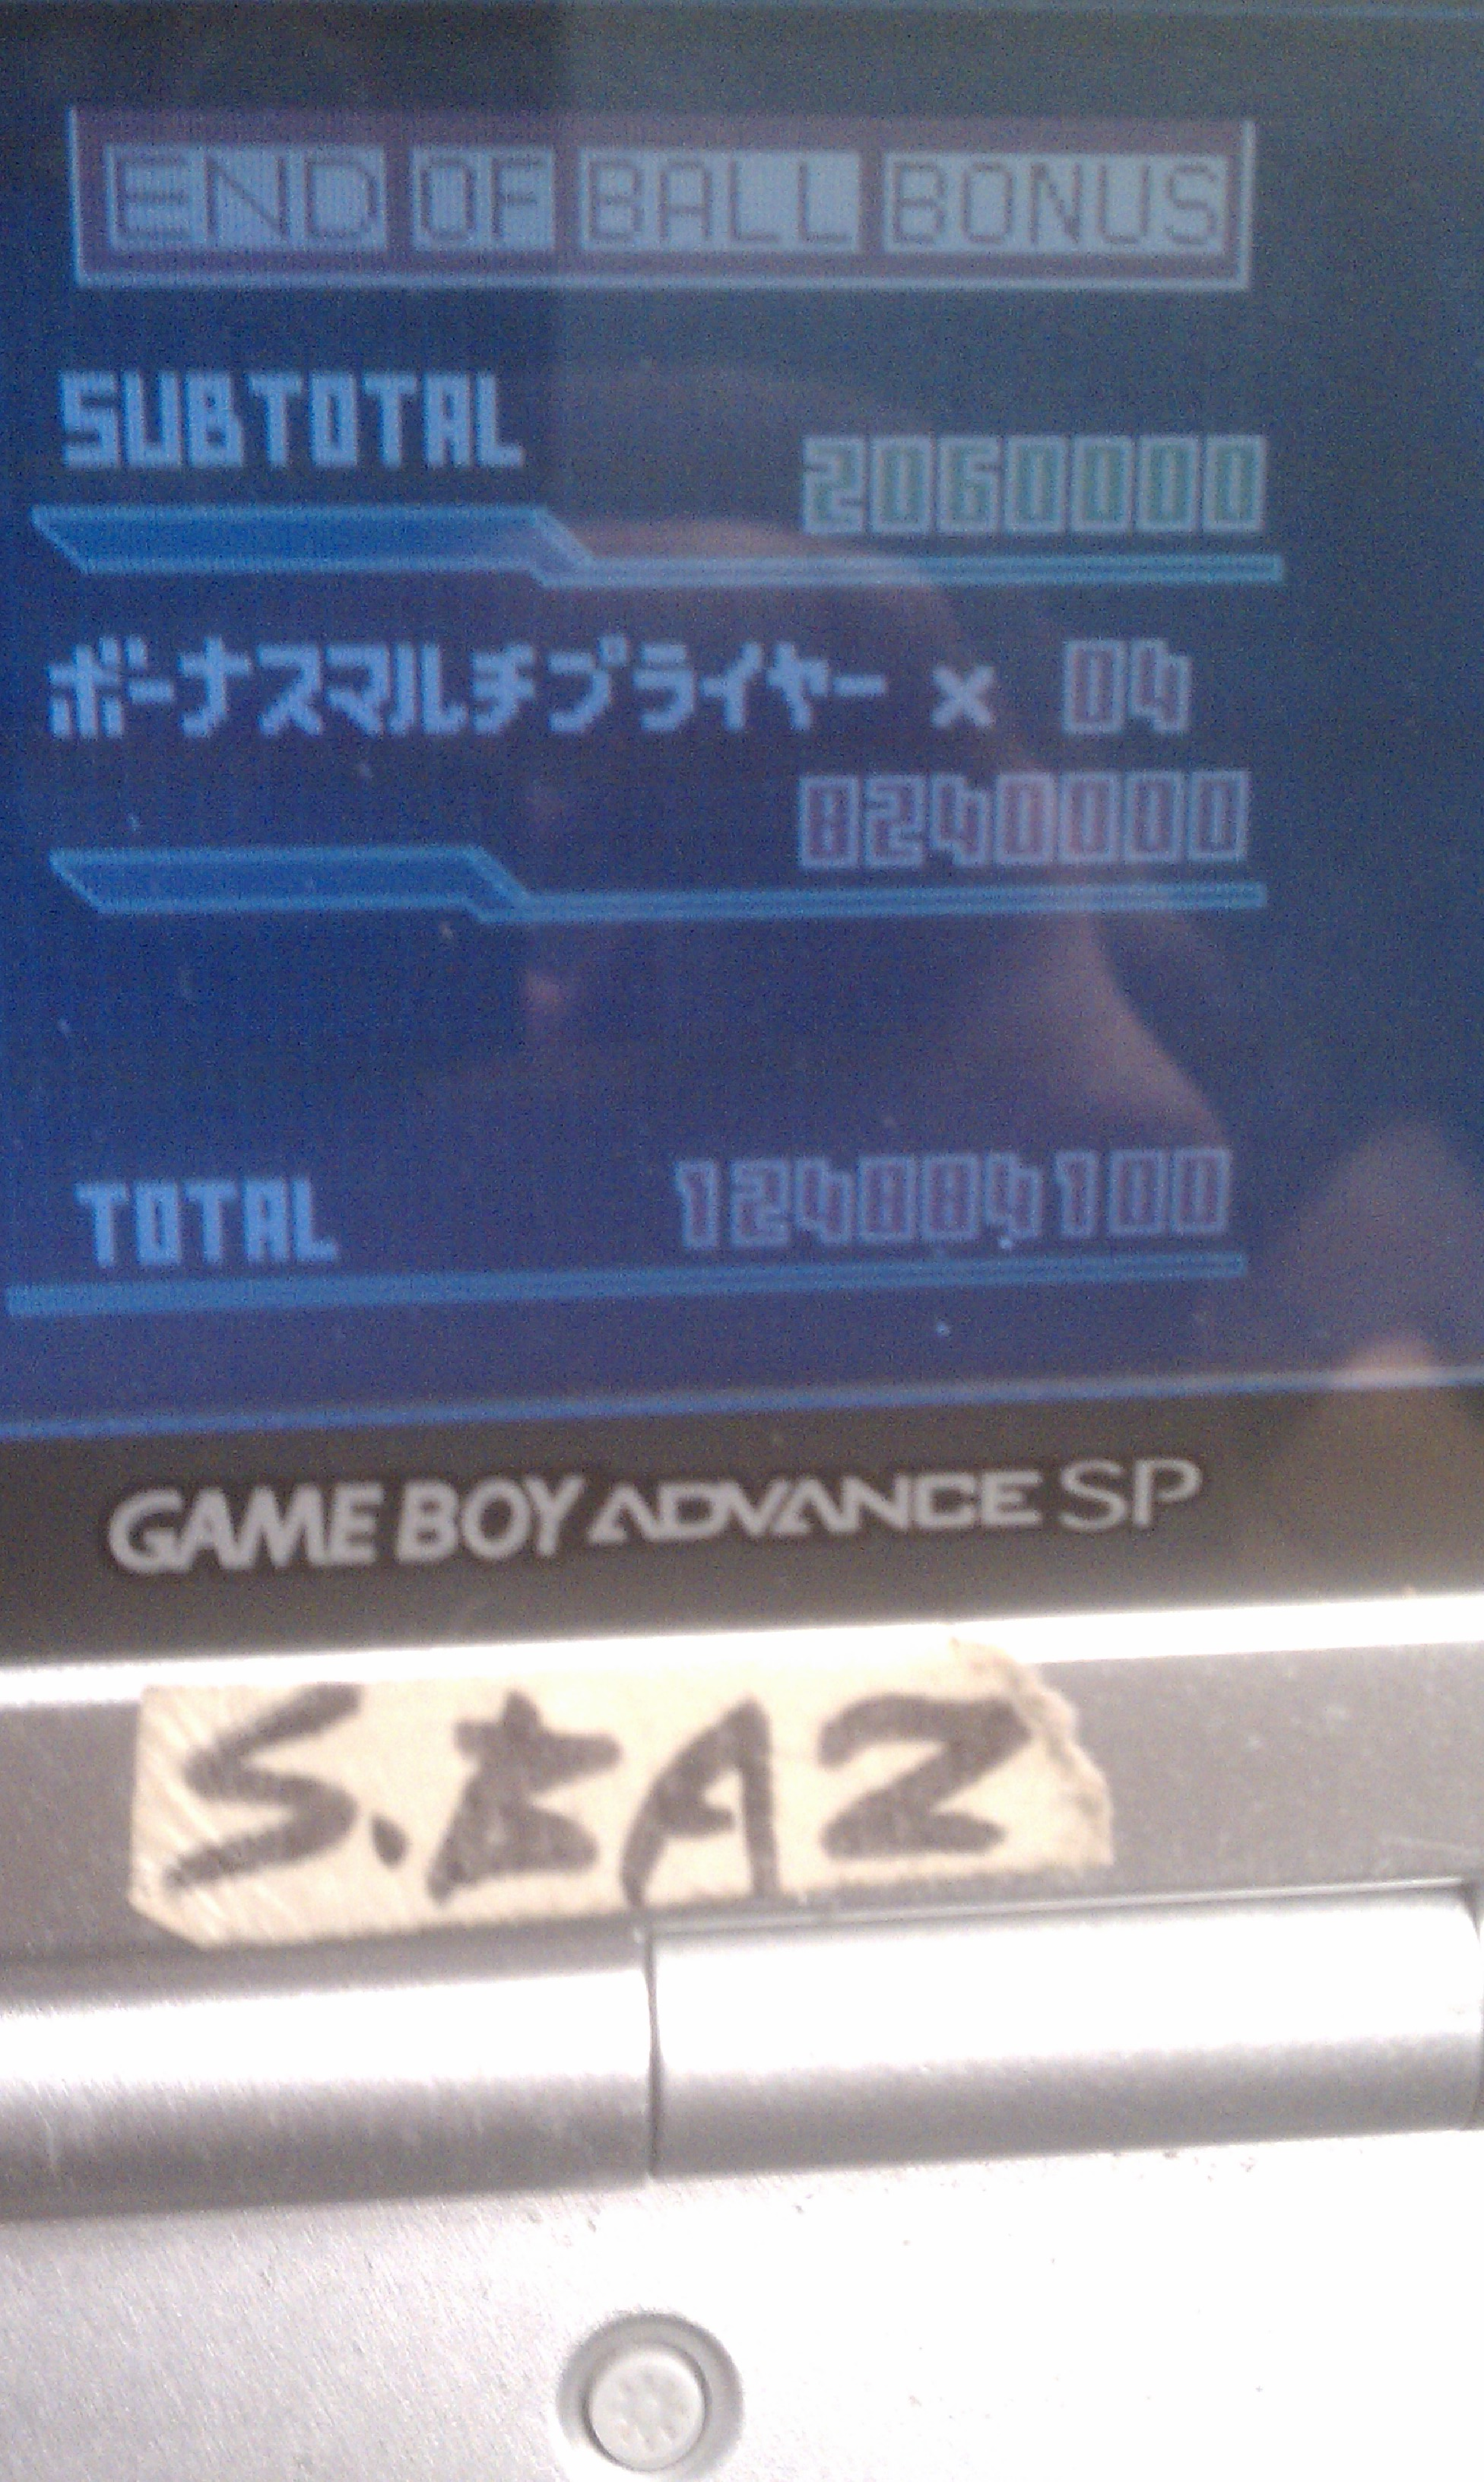 S.BAZ: Super Robot Pinball (Game Boy Color) 124,884,100 points on 2016-07-18 20:33:13